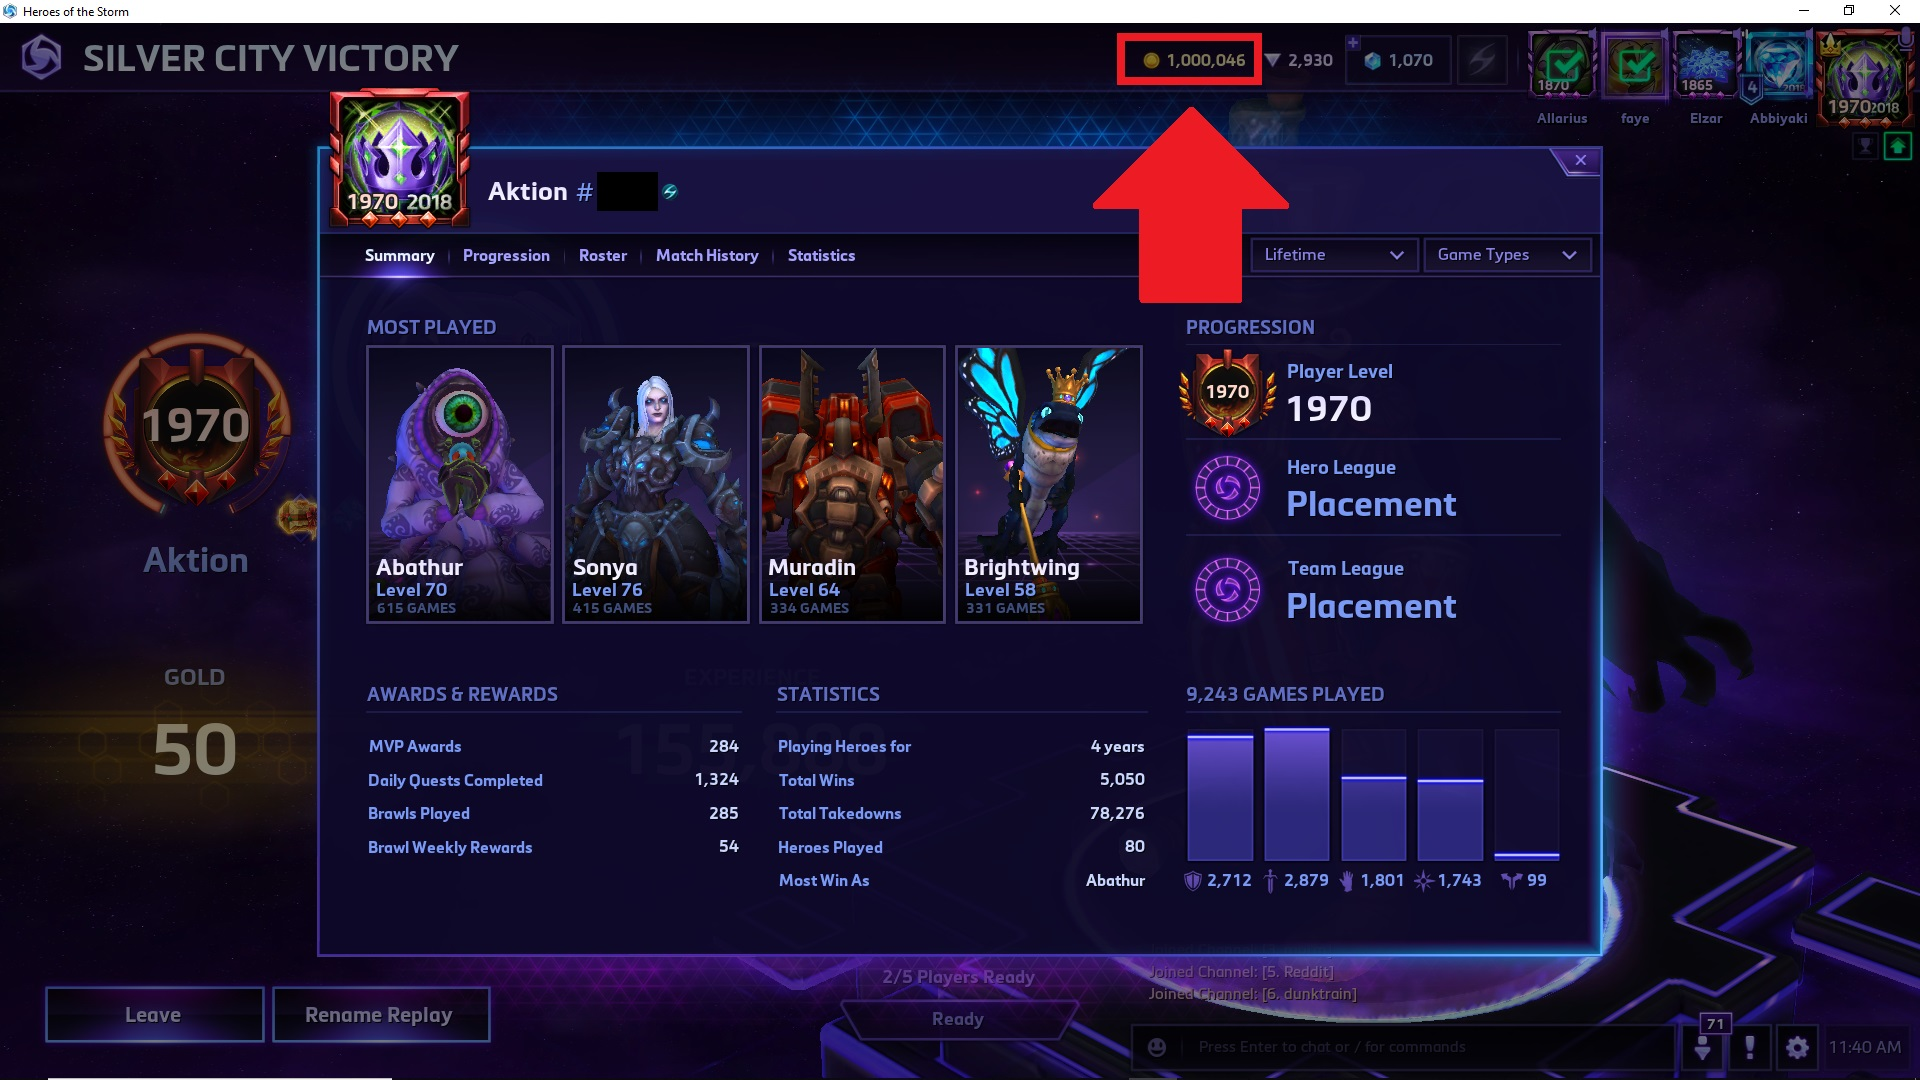 HotS Million Gold Screenshot